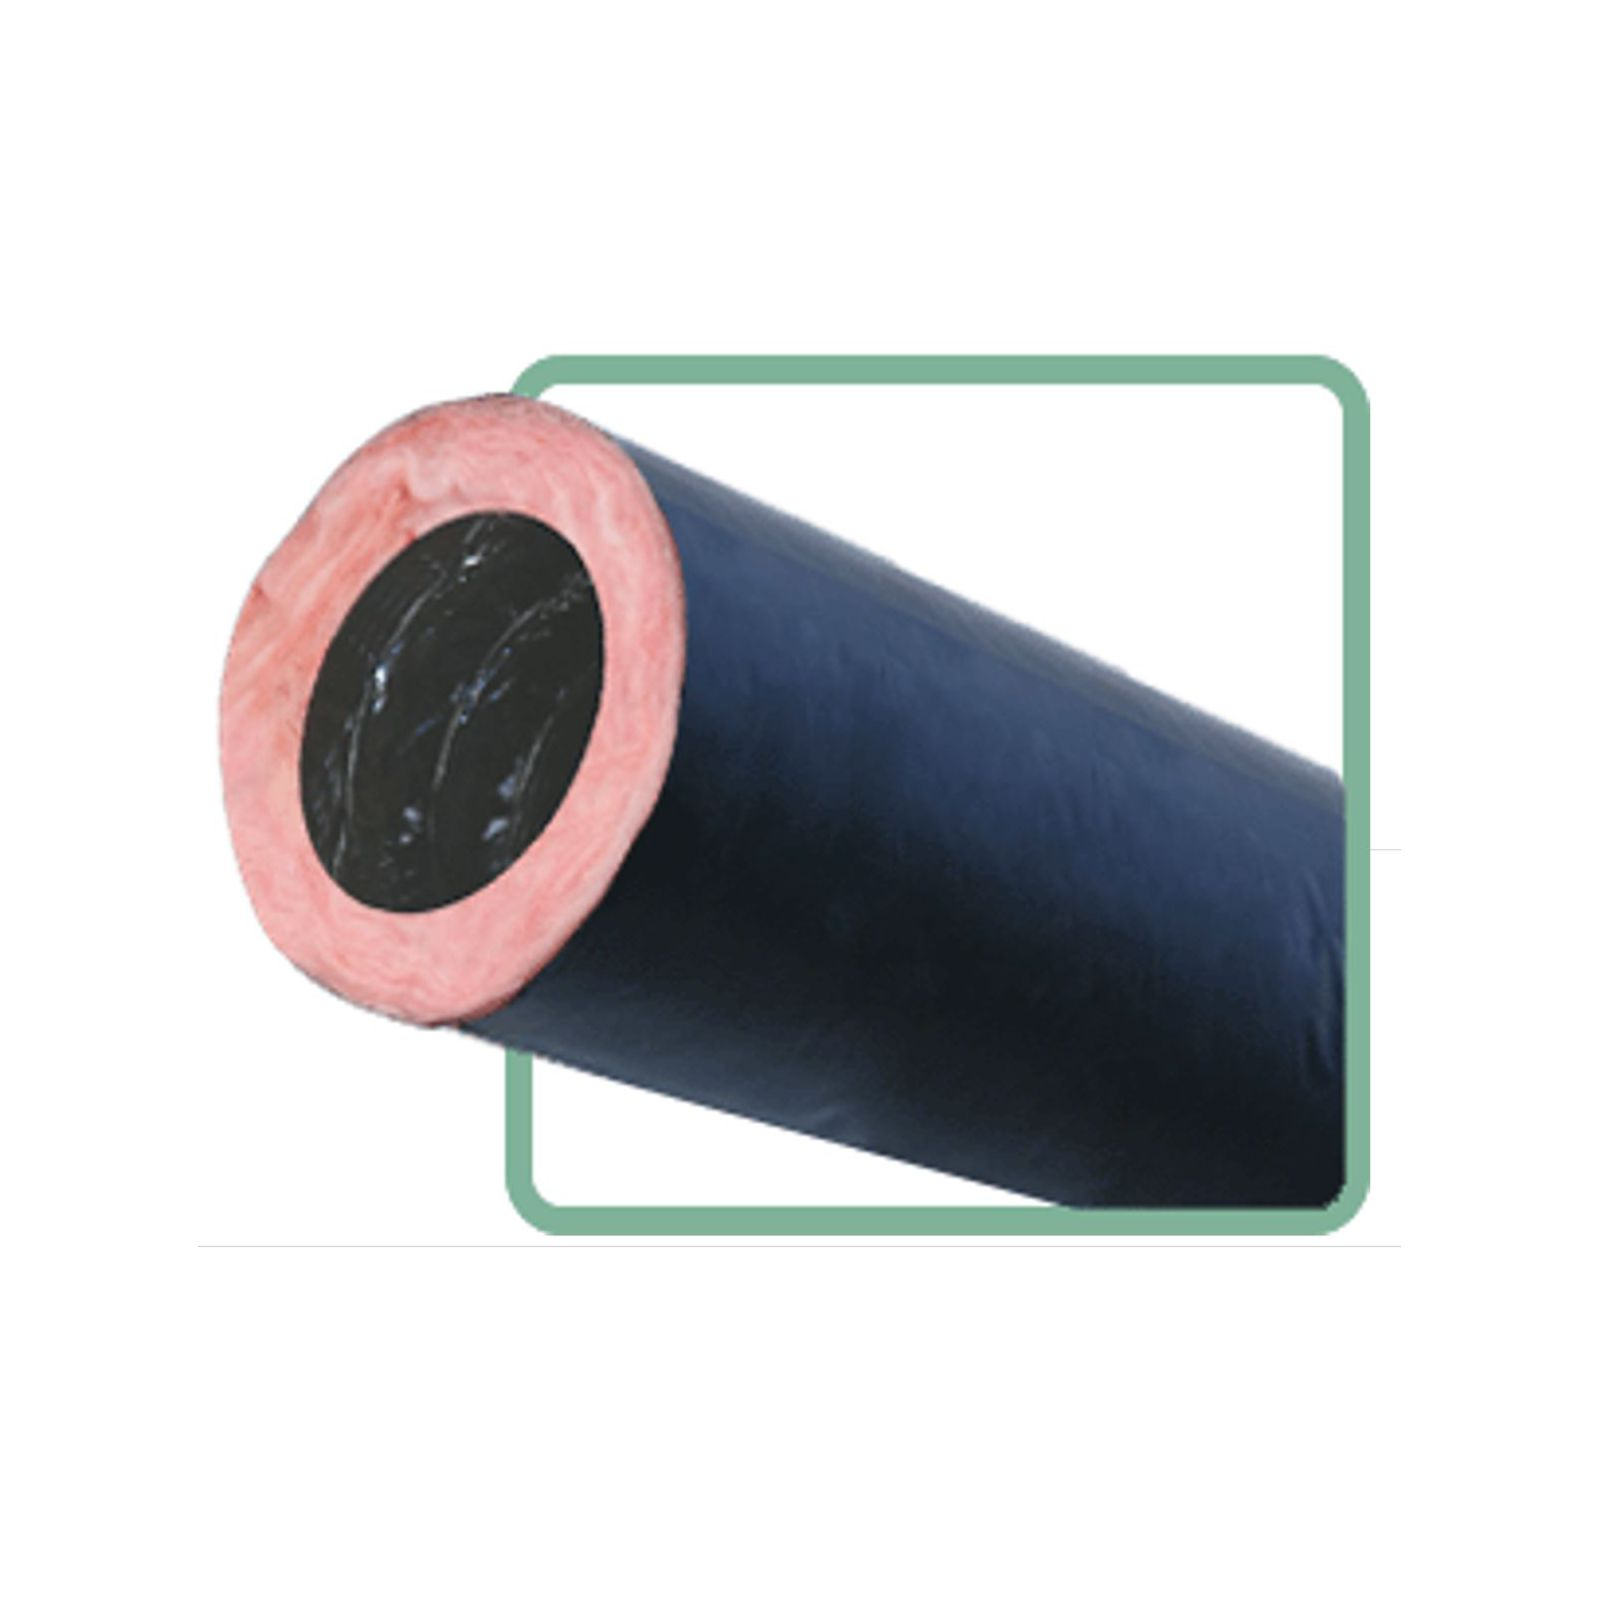 Thermaflex RKDR6MH14 - Insulated, double-air seal, flexible duct for